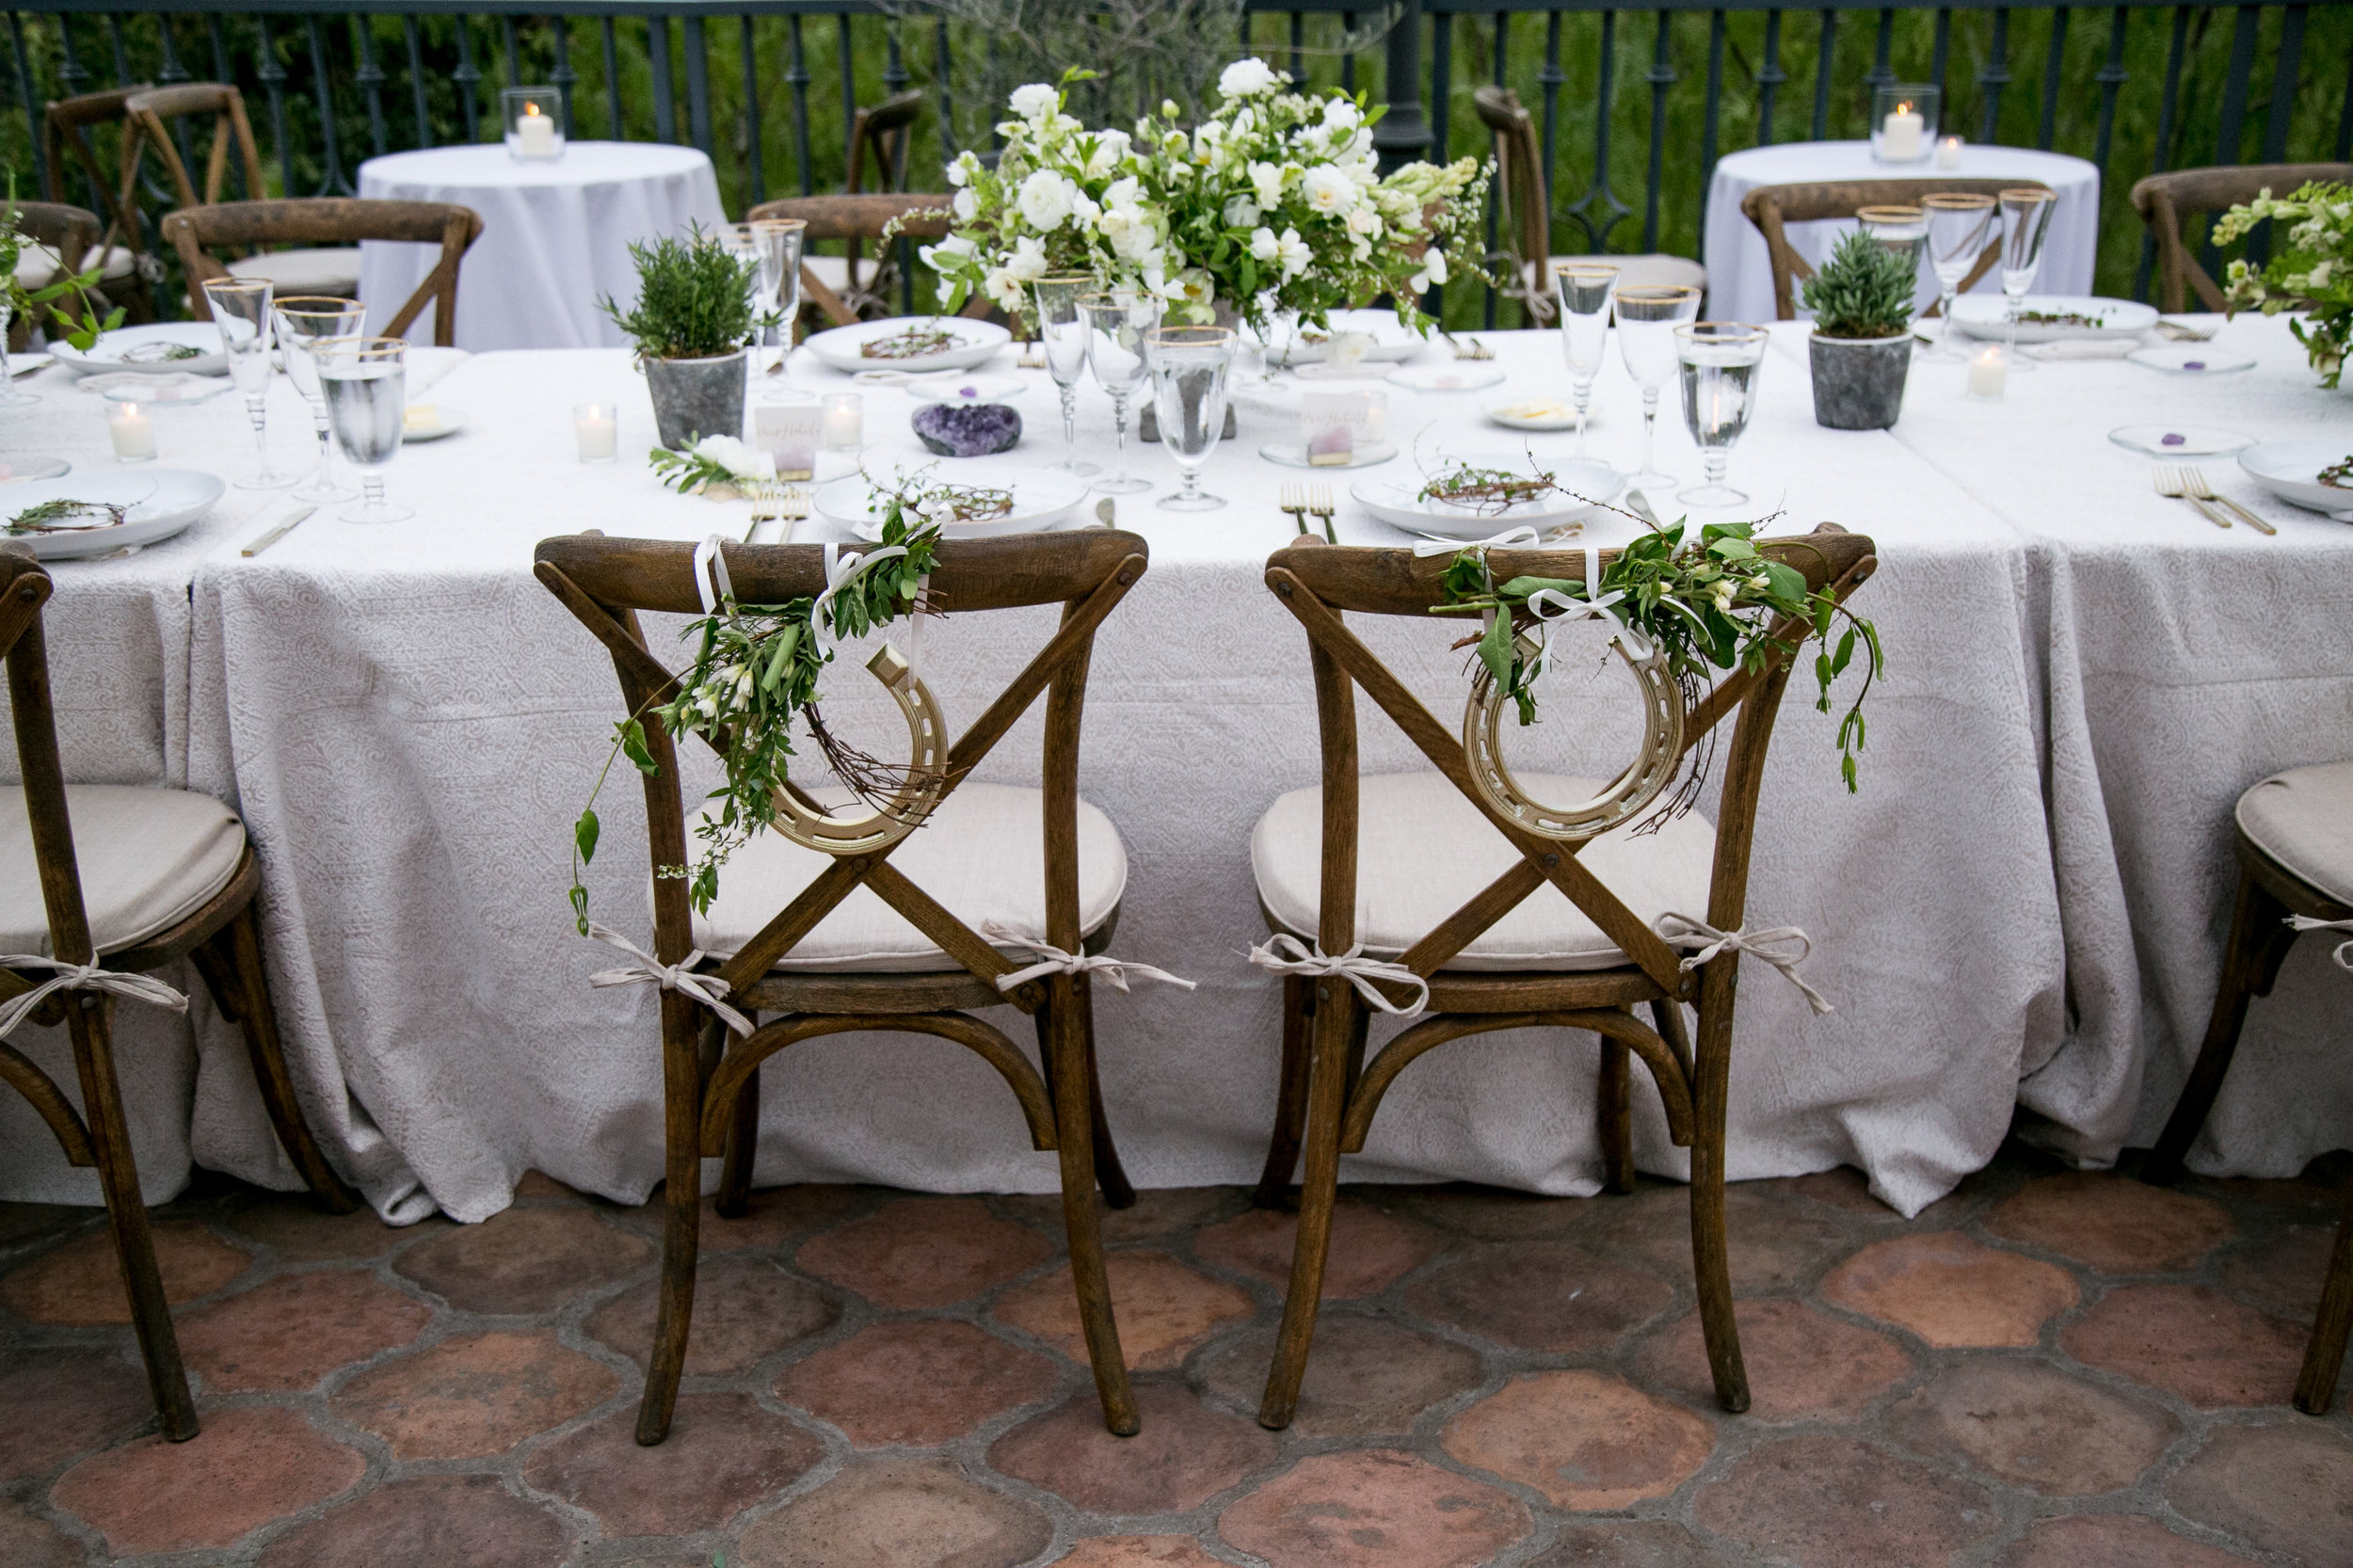 bride and groom chairs adorned with greenery